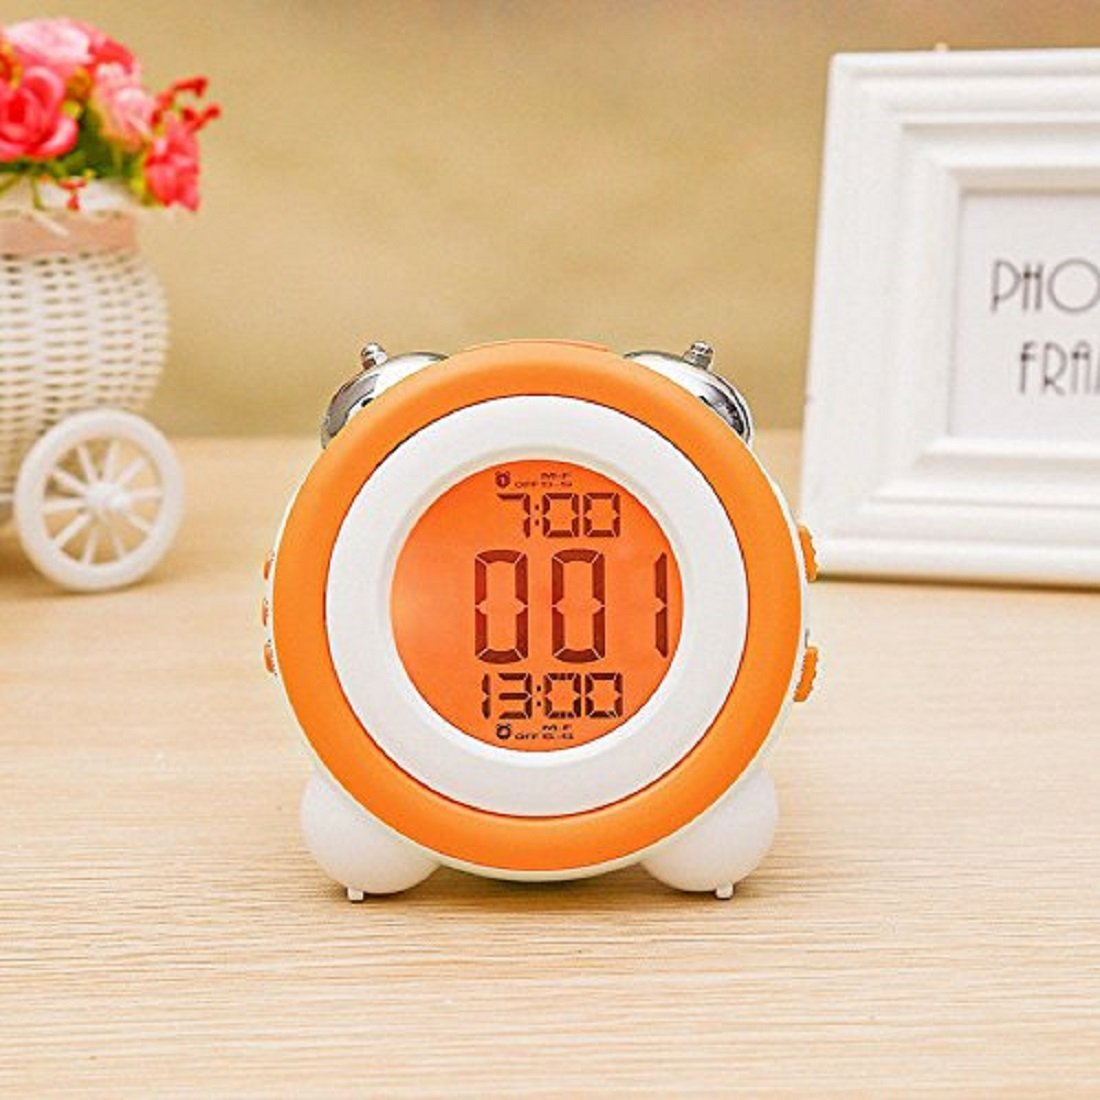 Jinon Stay-In-Bed Light Clock, Kids Alarm Clock,Double Bell Alarm Clock With Snooze for Kids, Students,Teaches Child When Ok-to Wake Up (Orange)